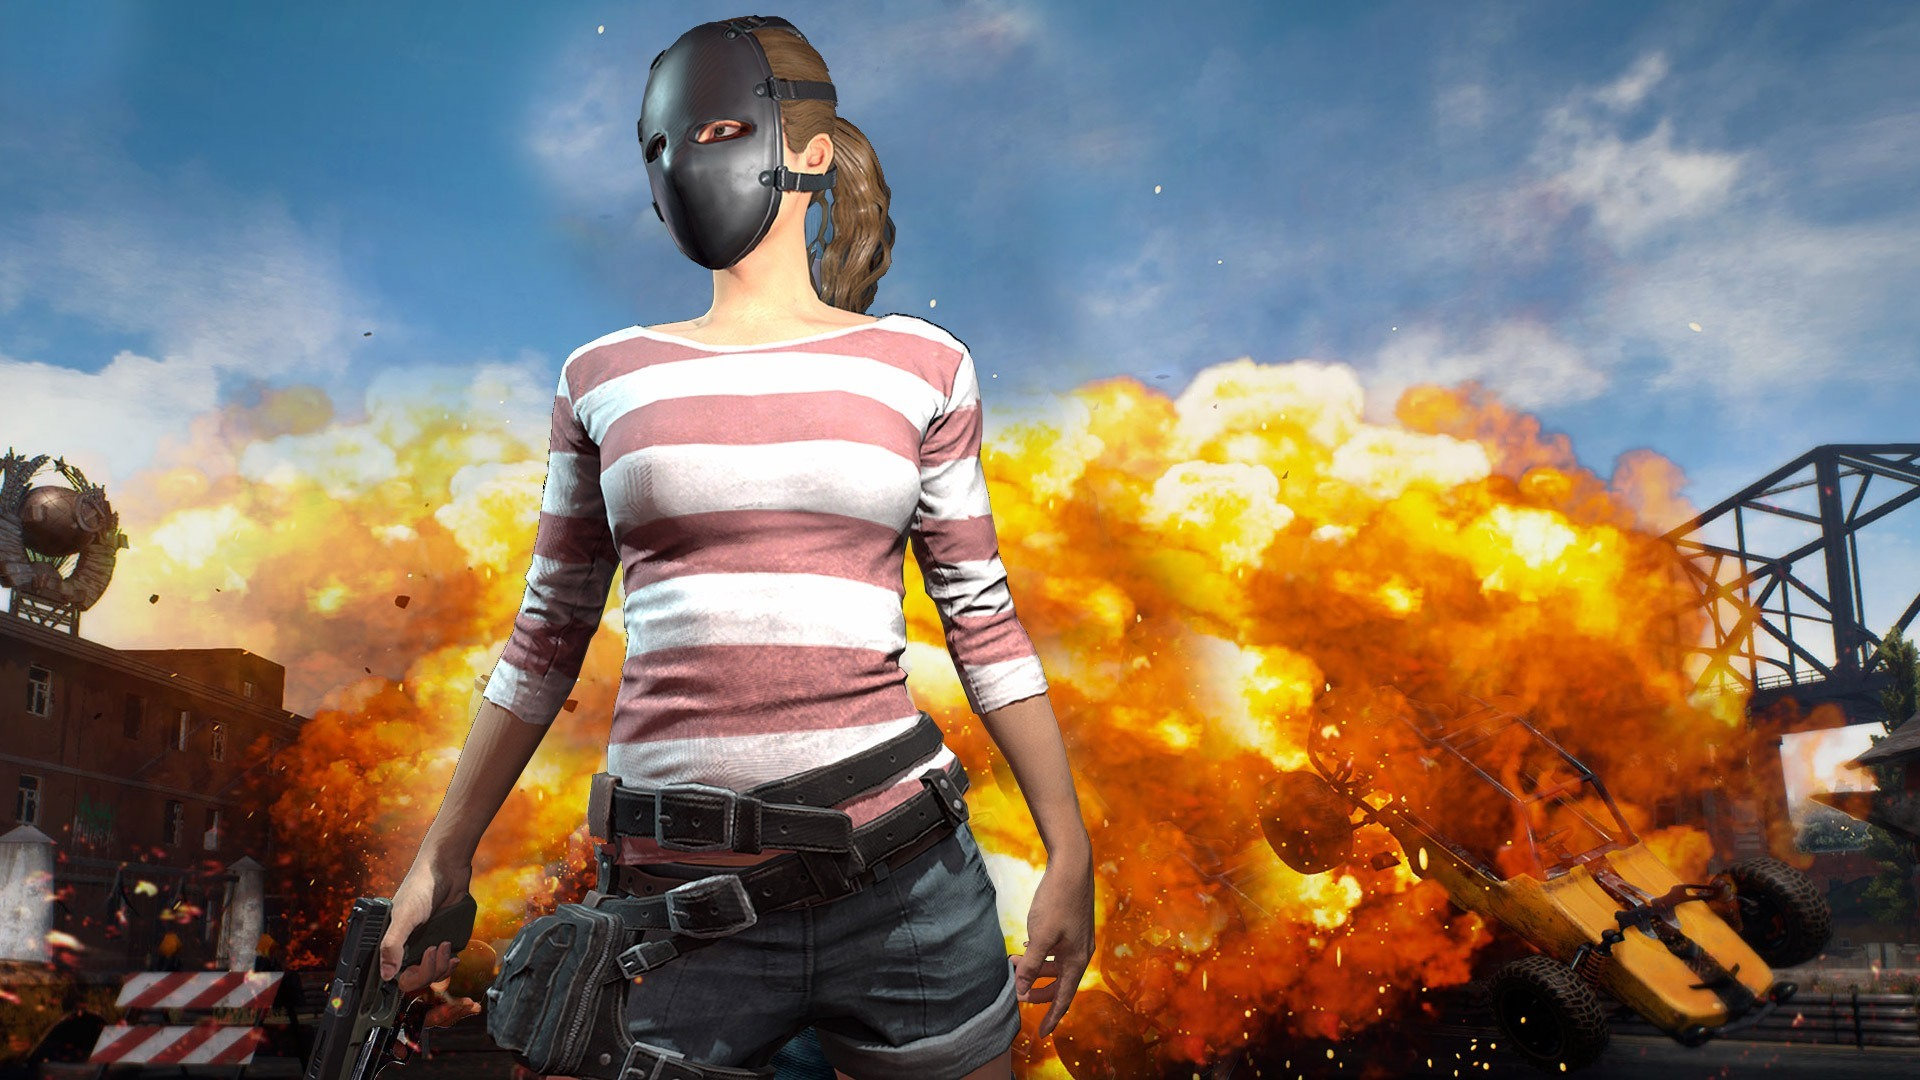 Pubg Hd Wallpapers Free Download For Desktop Pc: PUBG Free-to-play Nu Te Downloaden Op IOS En Android